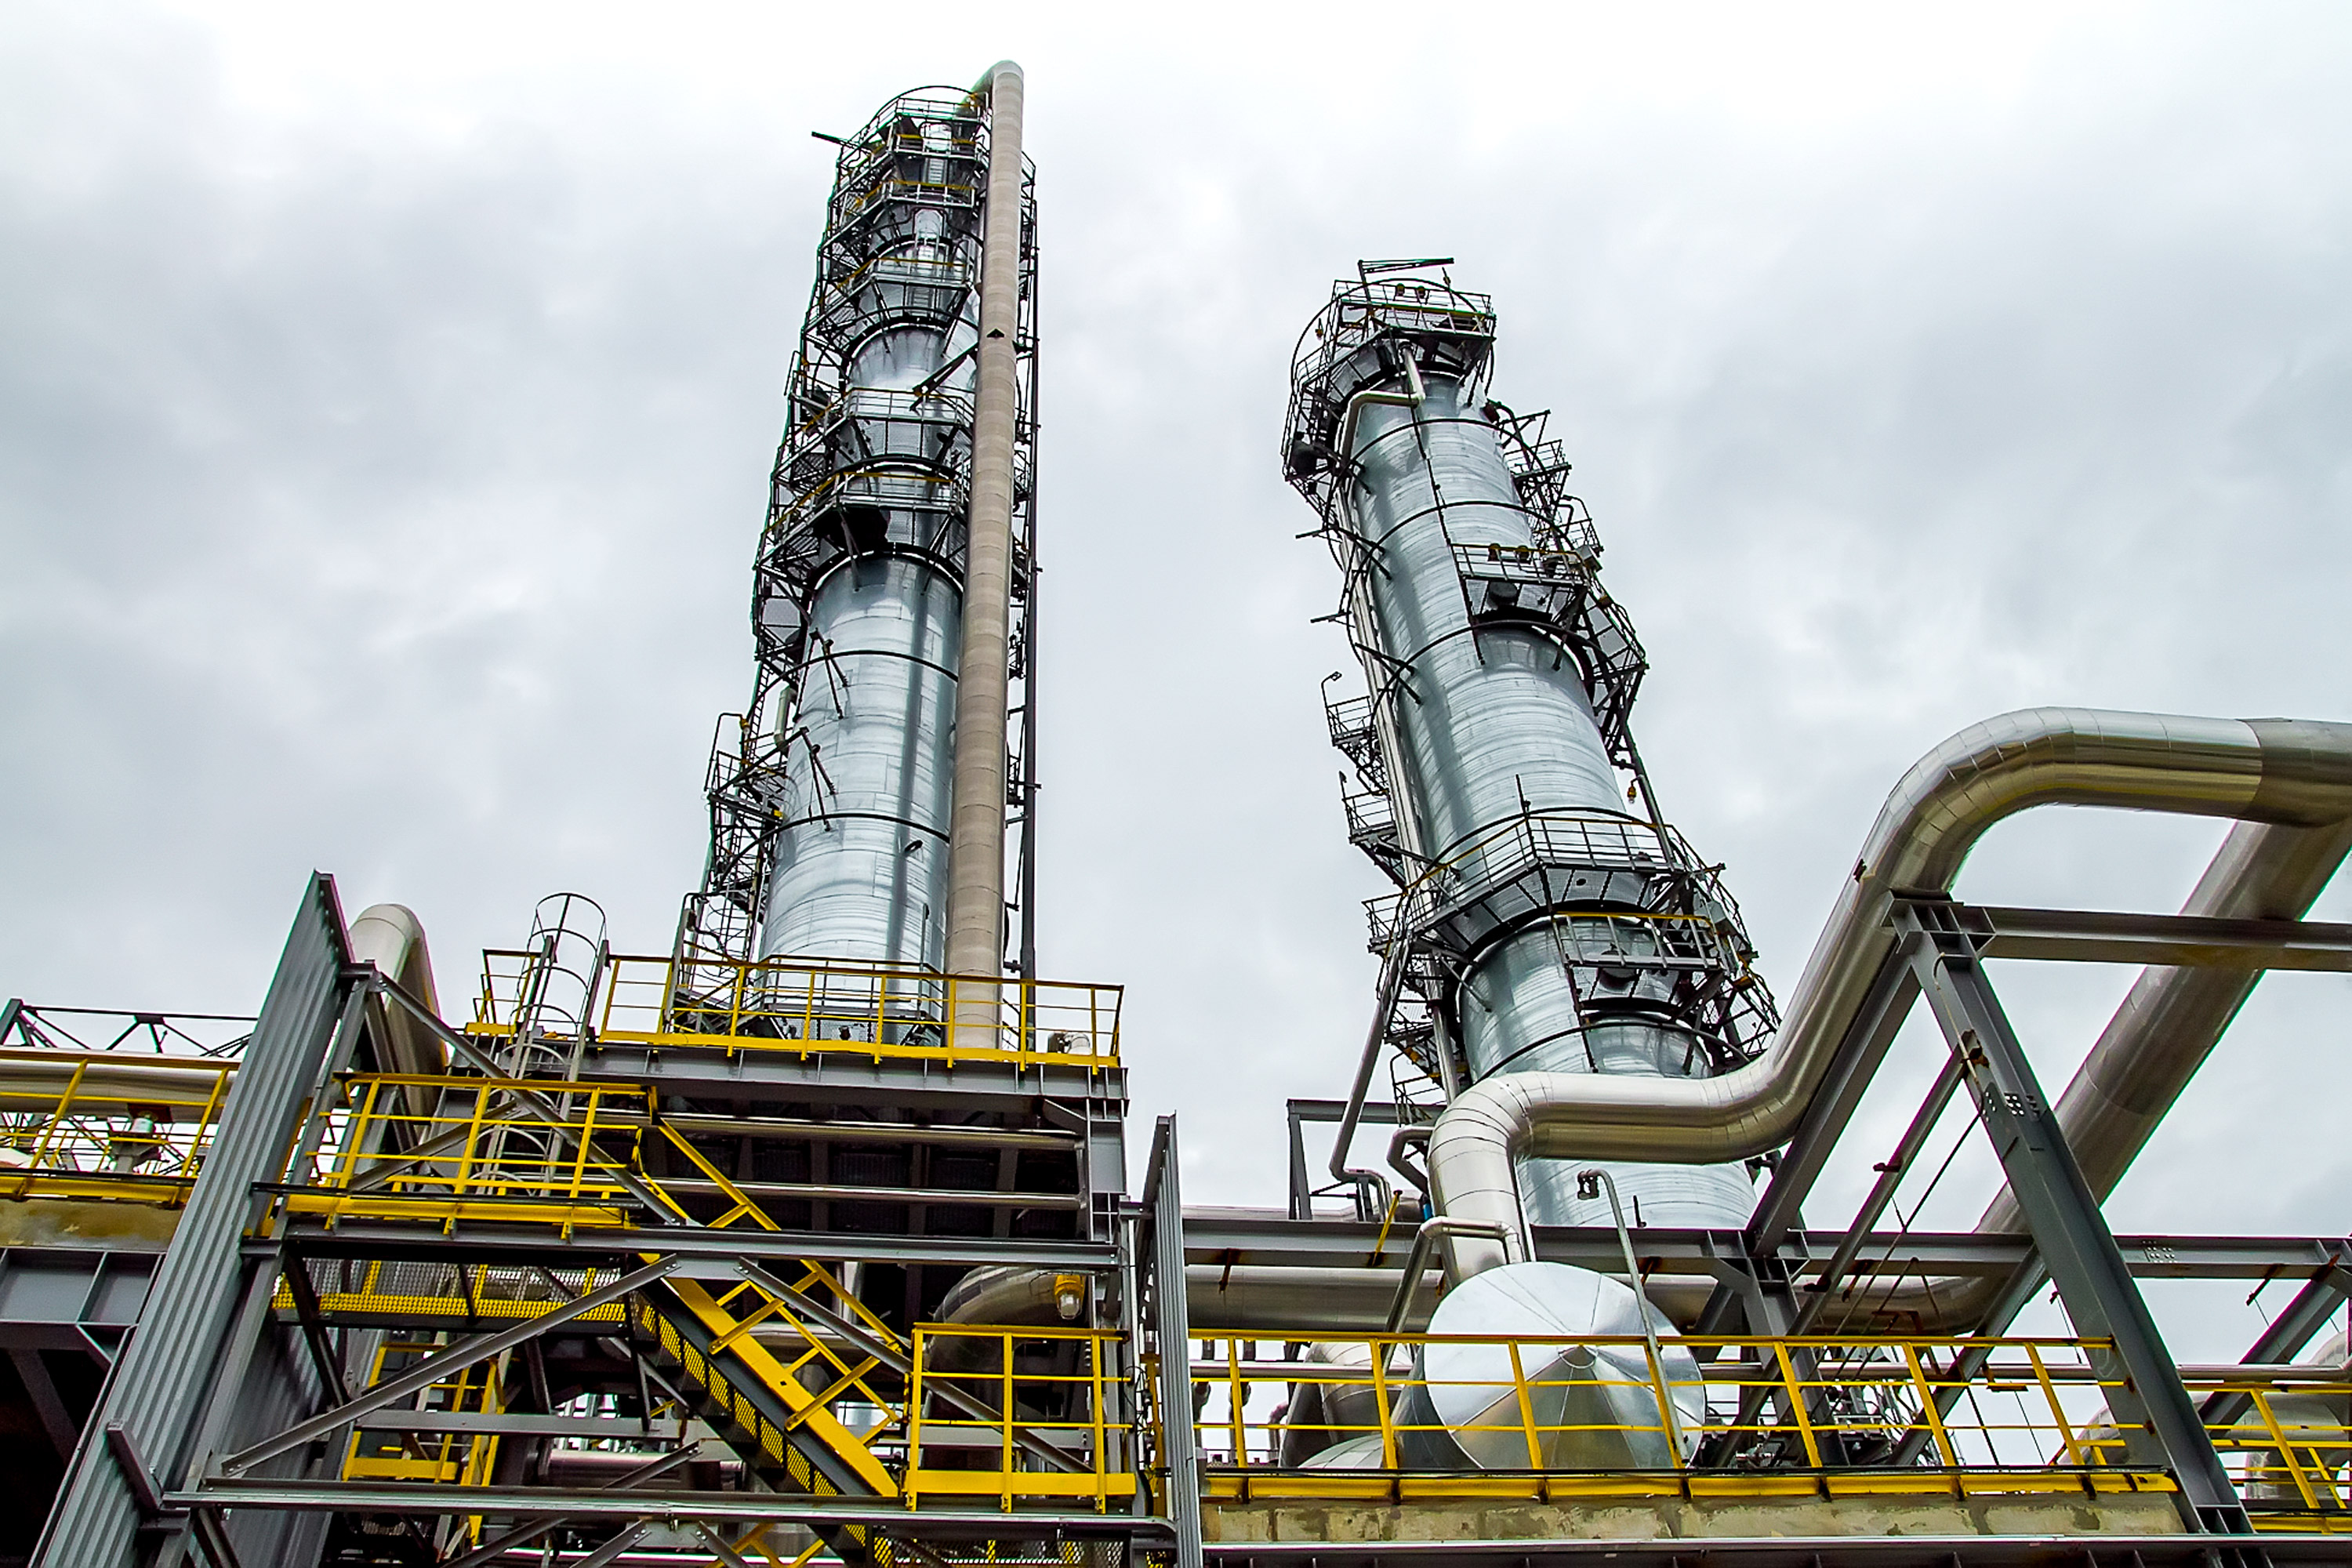 UCC Shchekinoazot's new co-production plant is the first in the world to produce more methanol than ammonia